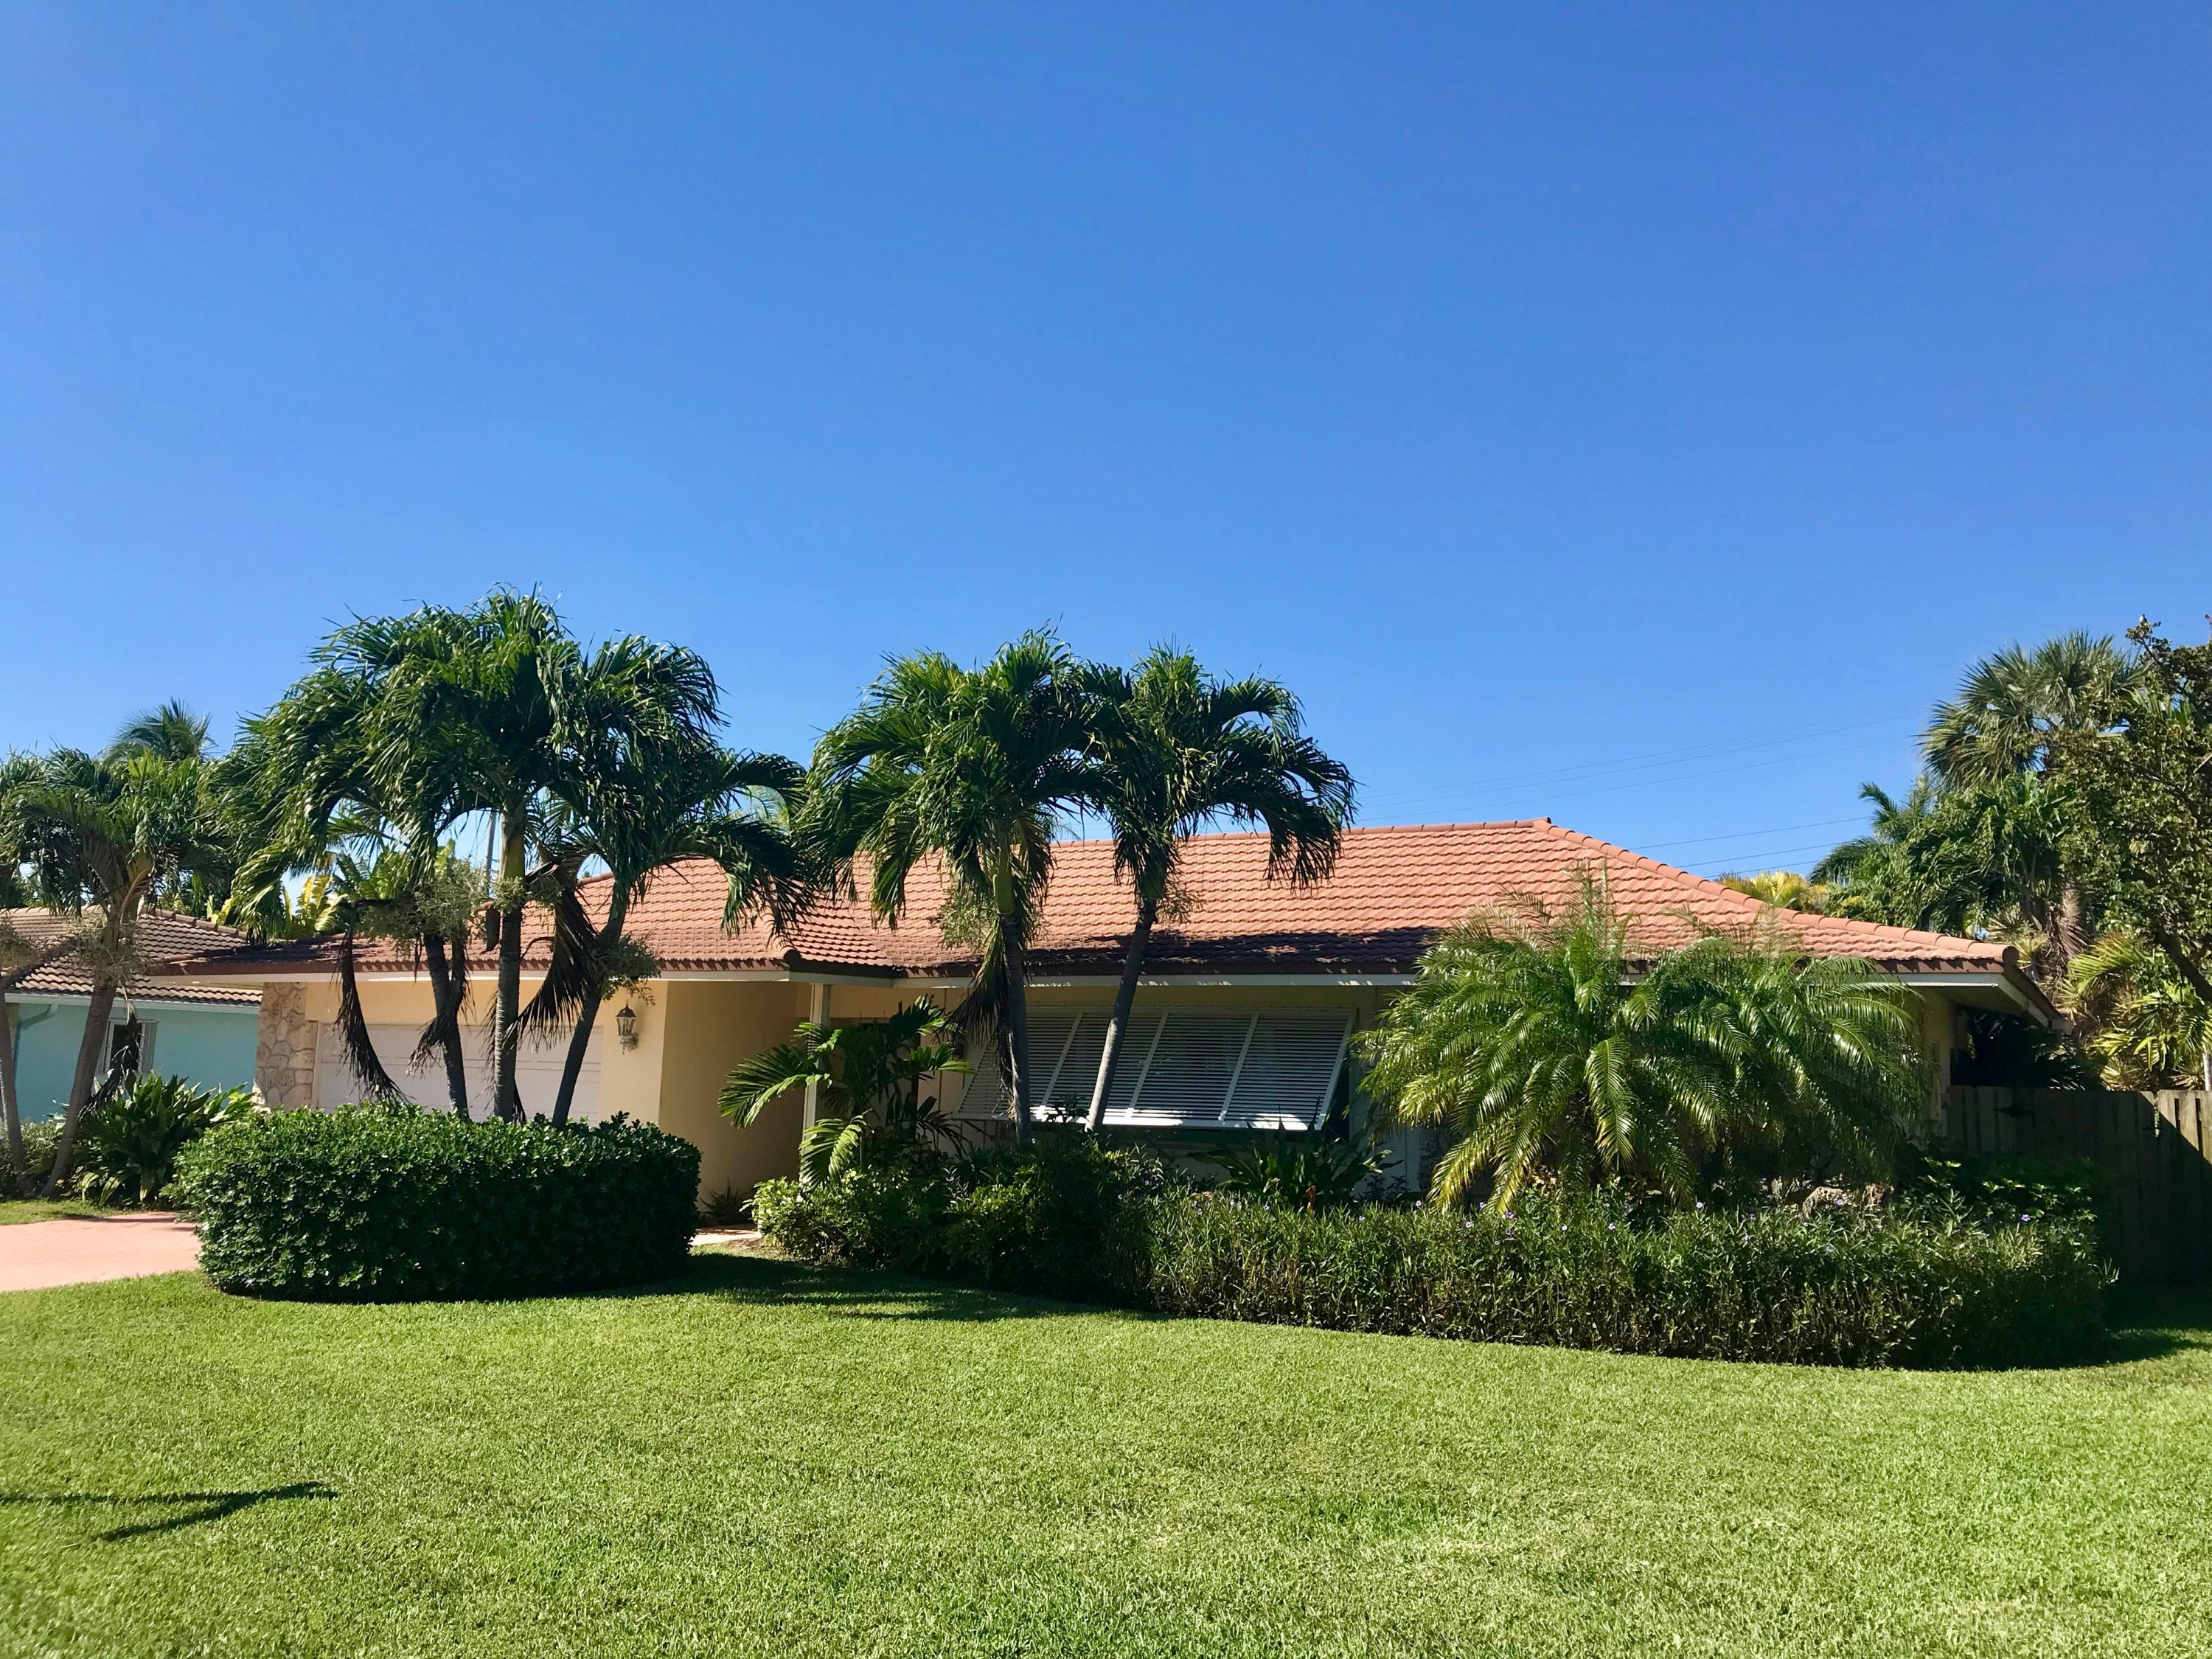 839 Malaga Drive, Boca Raton, Florida 33432, 4 Bedrooms Bedrooms, ,3 BathroomsBathrooms,Single Family,For Rent,Malaga,RX-10520778